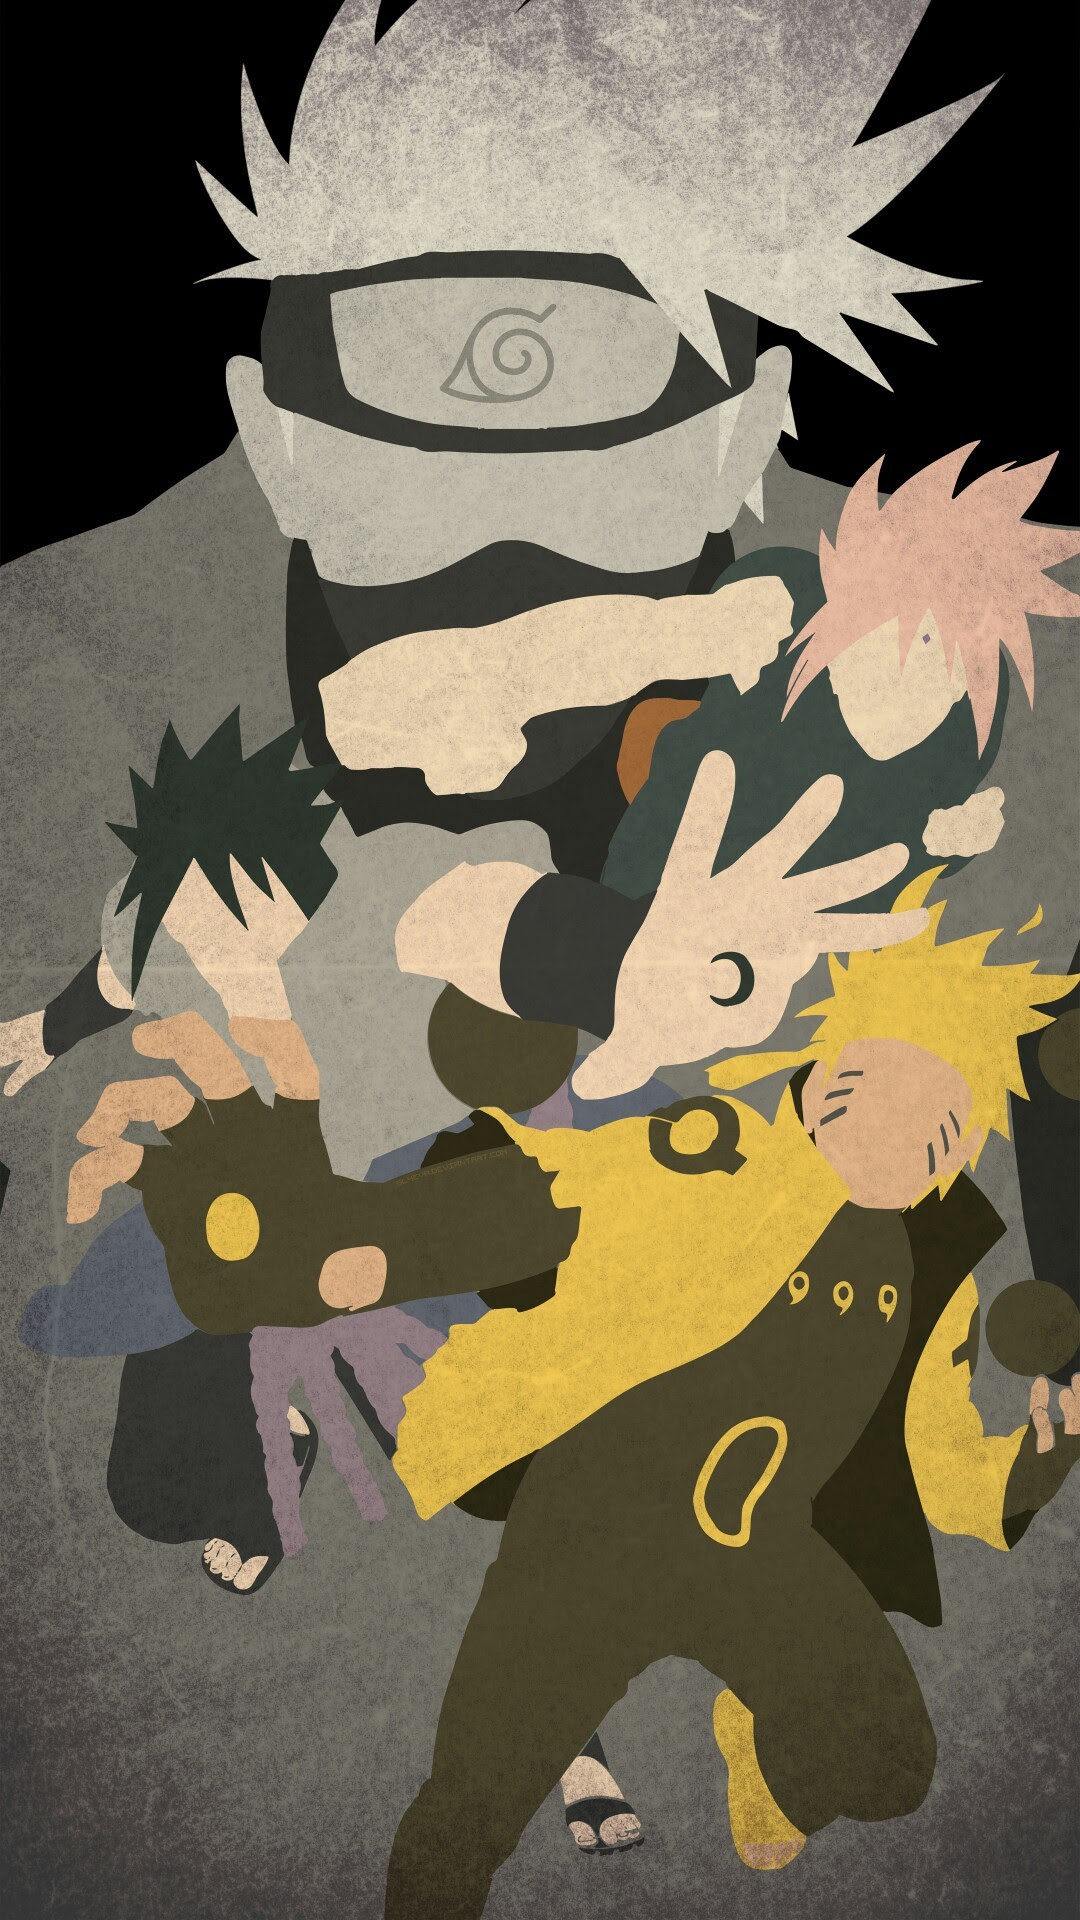 Download 560 Wallpaper Naruto 4k Cellular HD Gratid